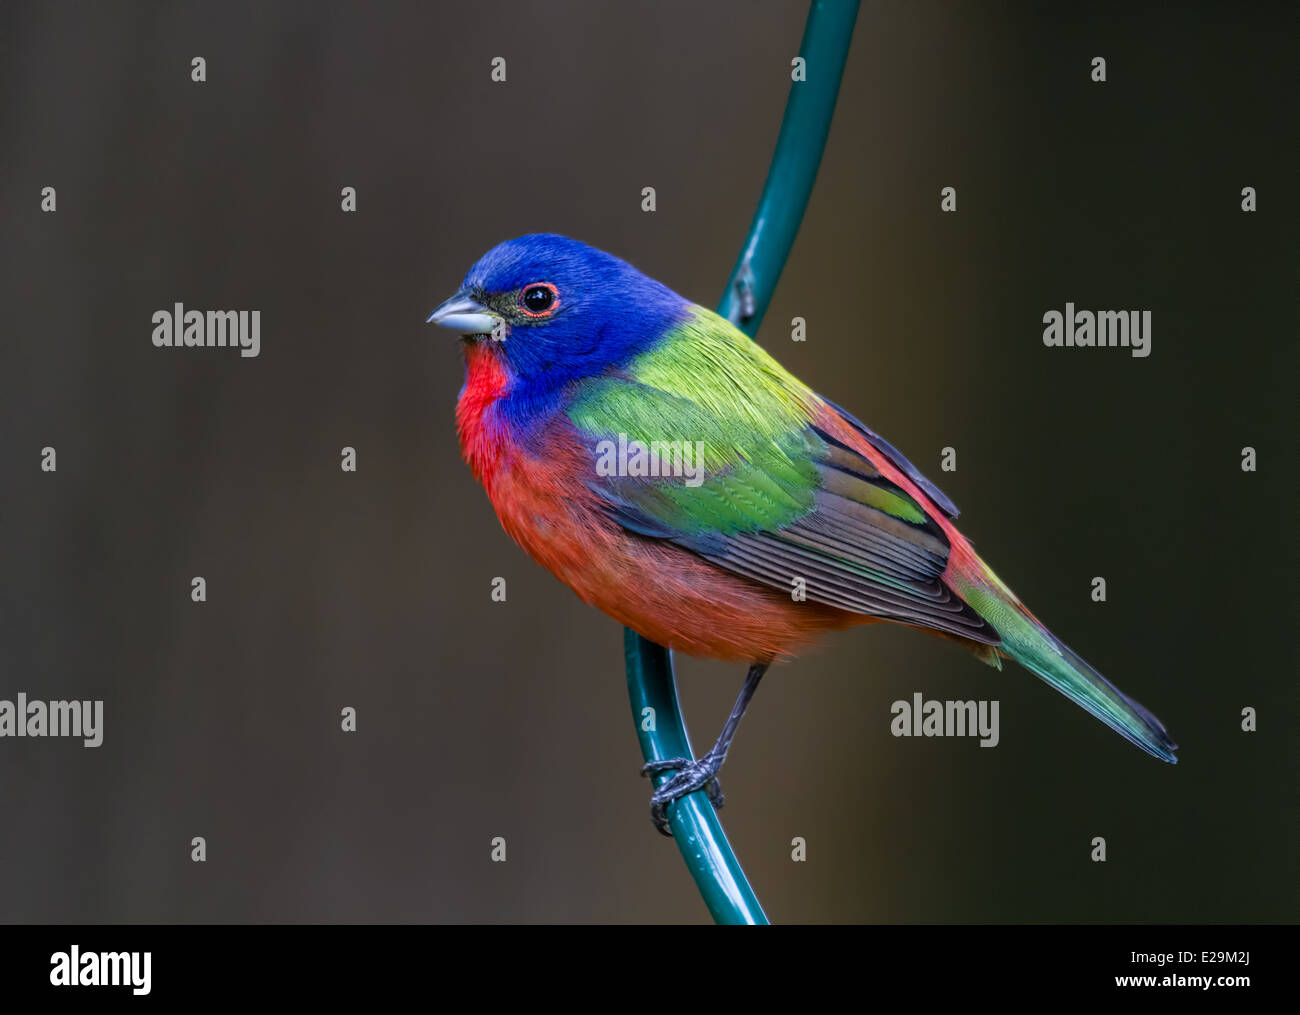 Male Painted Bunting (Passerina ciris) perched on a metal pole. - Stock Image